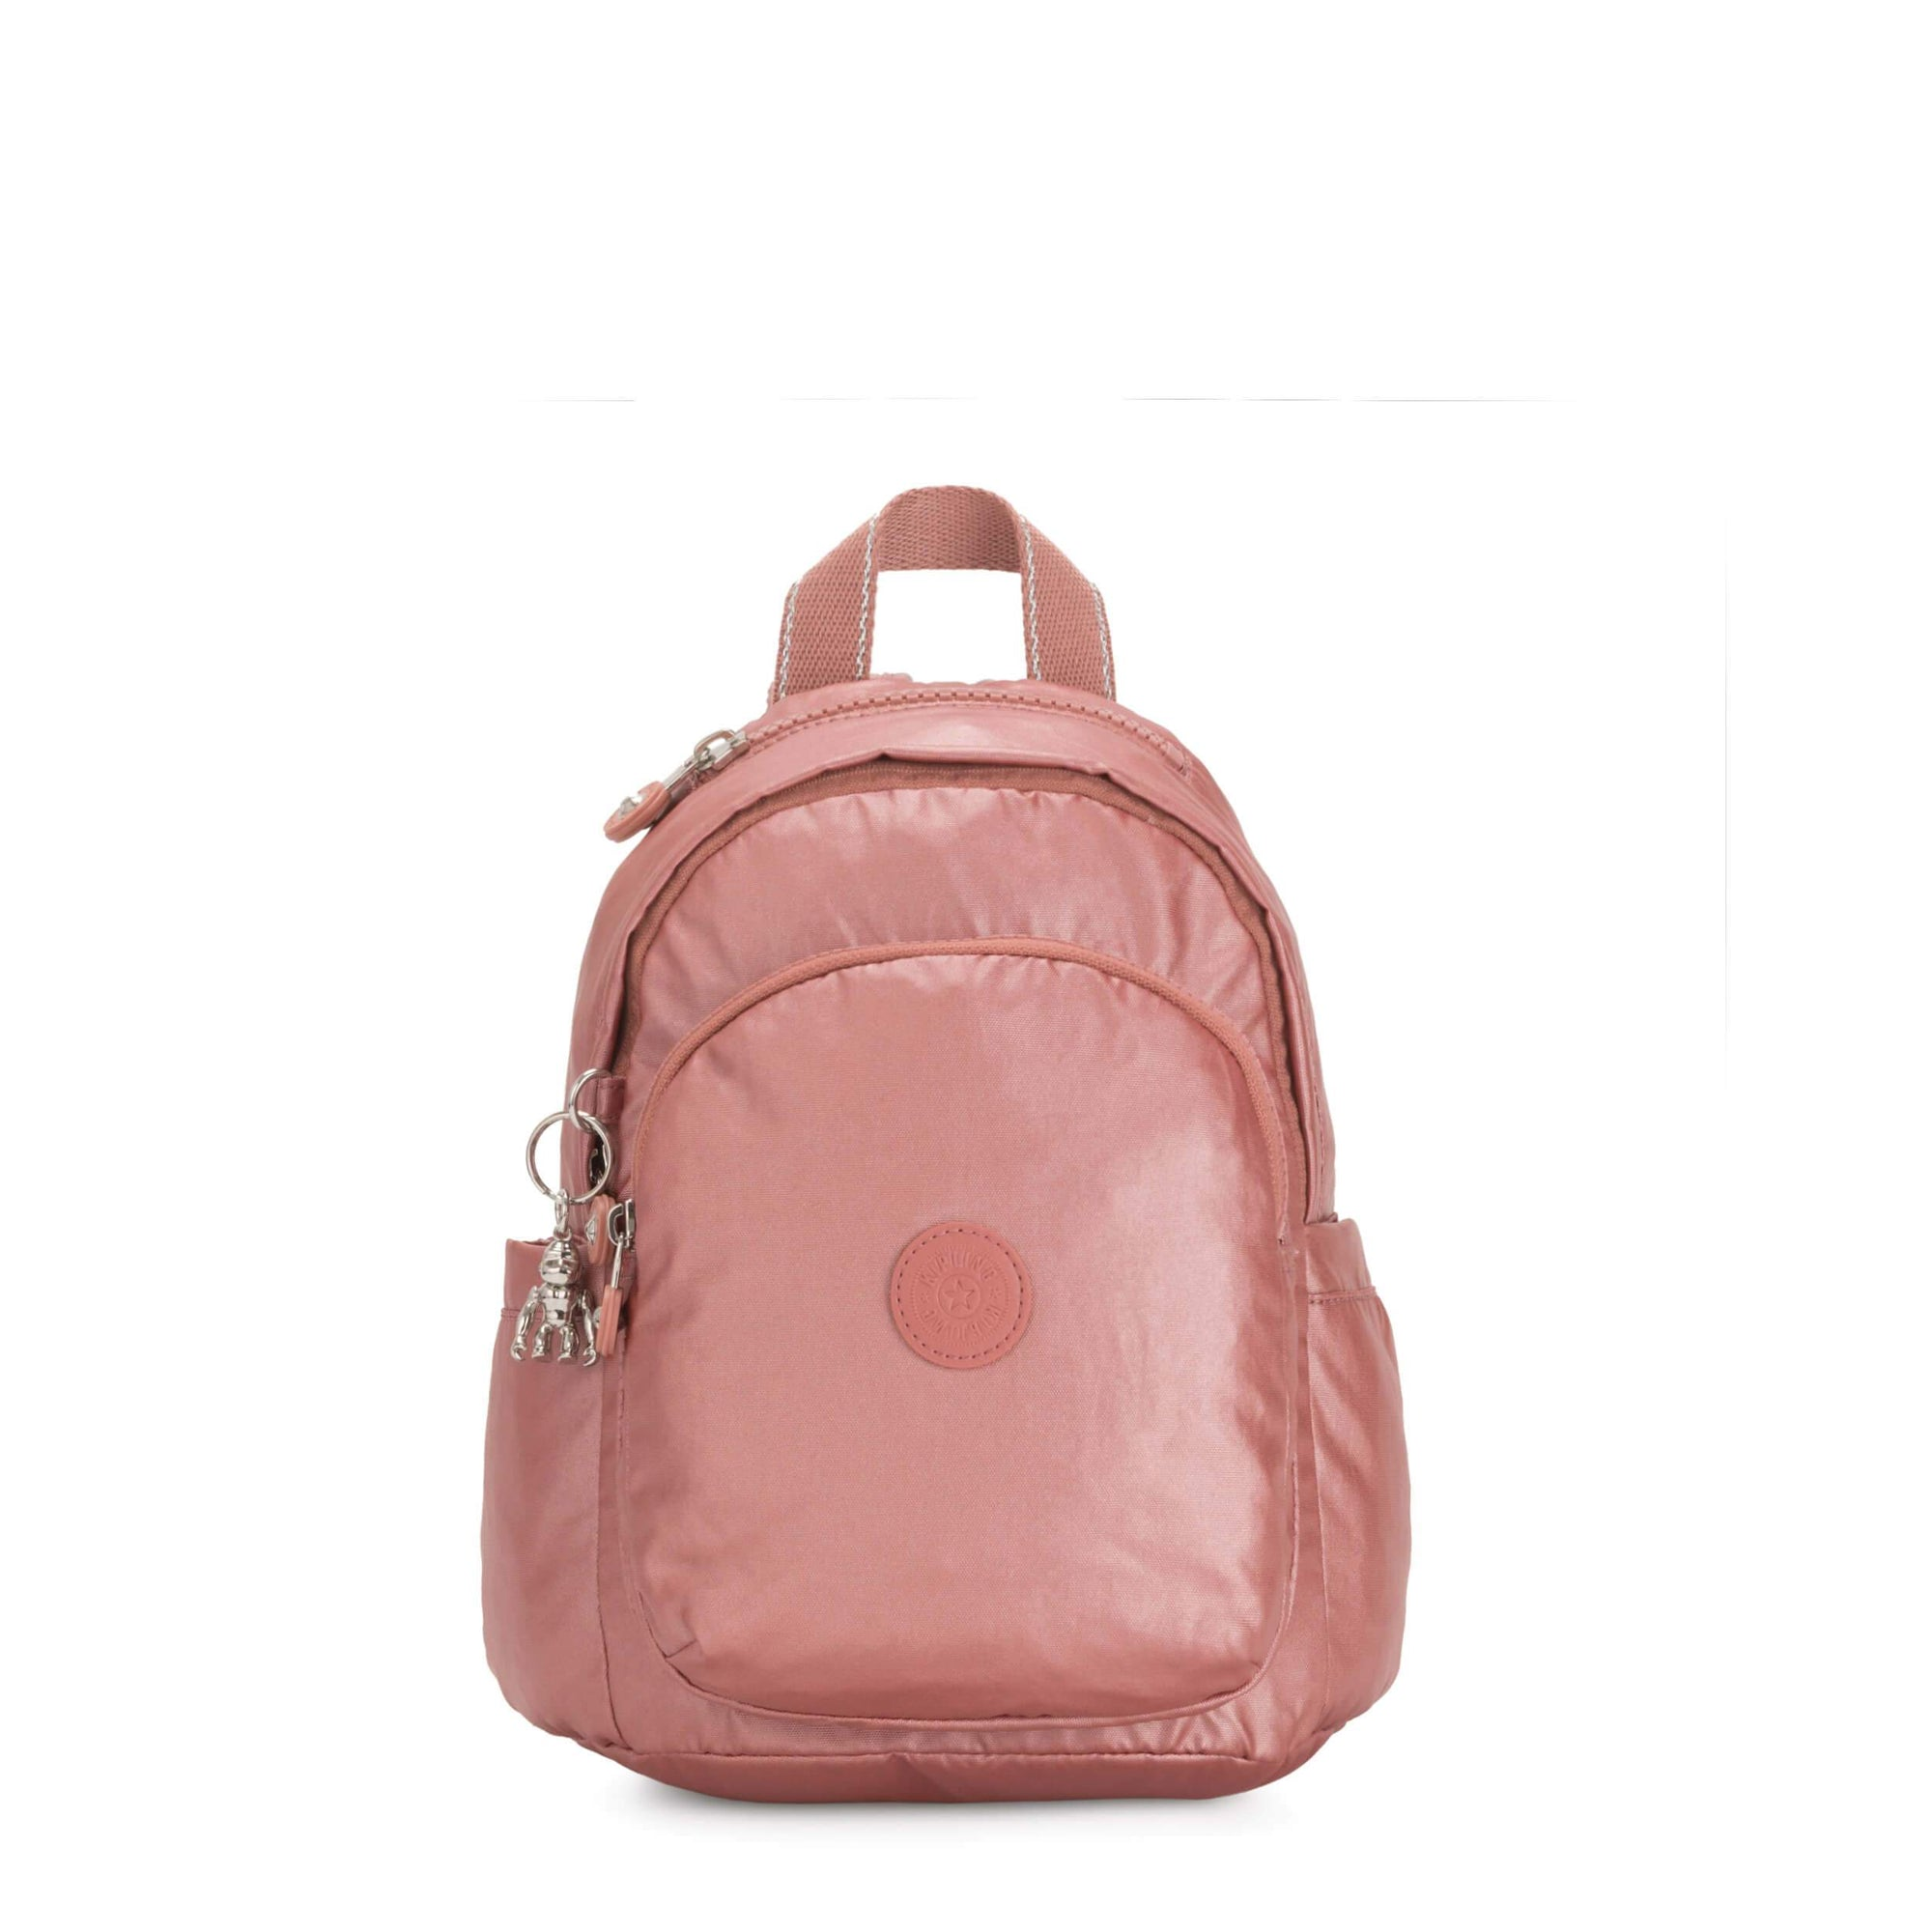 Backpack Kipling Delia Mini Metallic Rust KI496648P